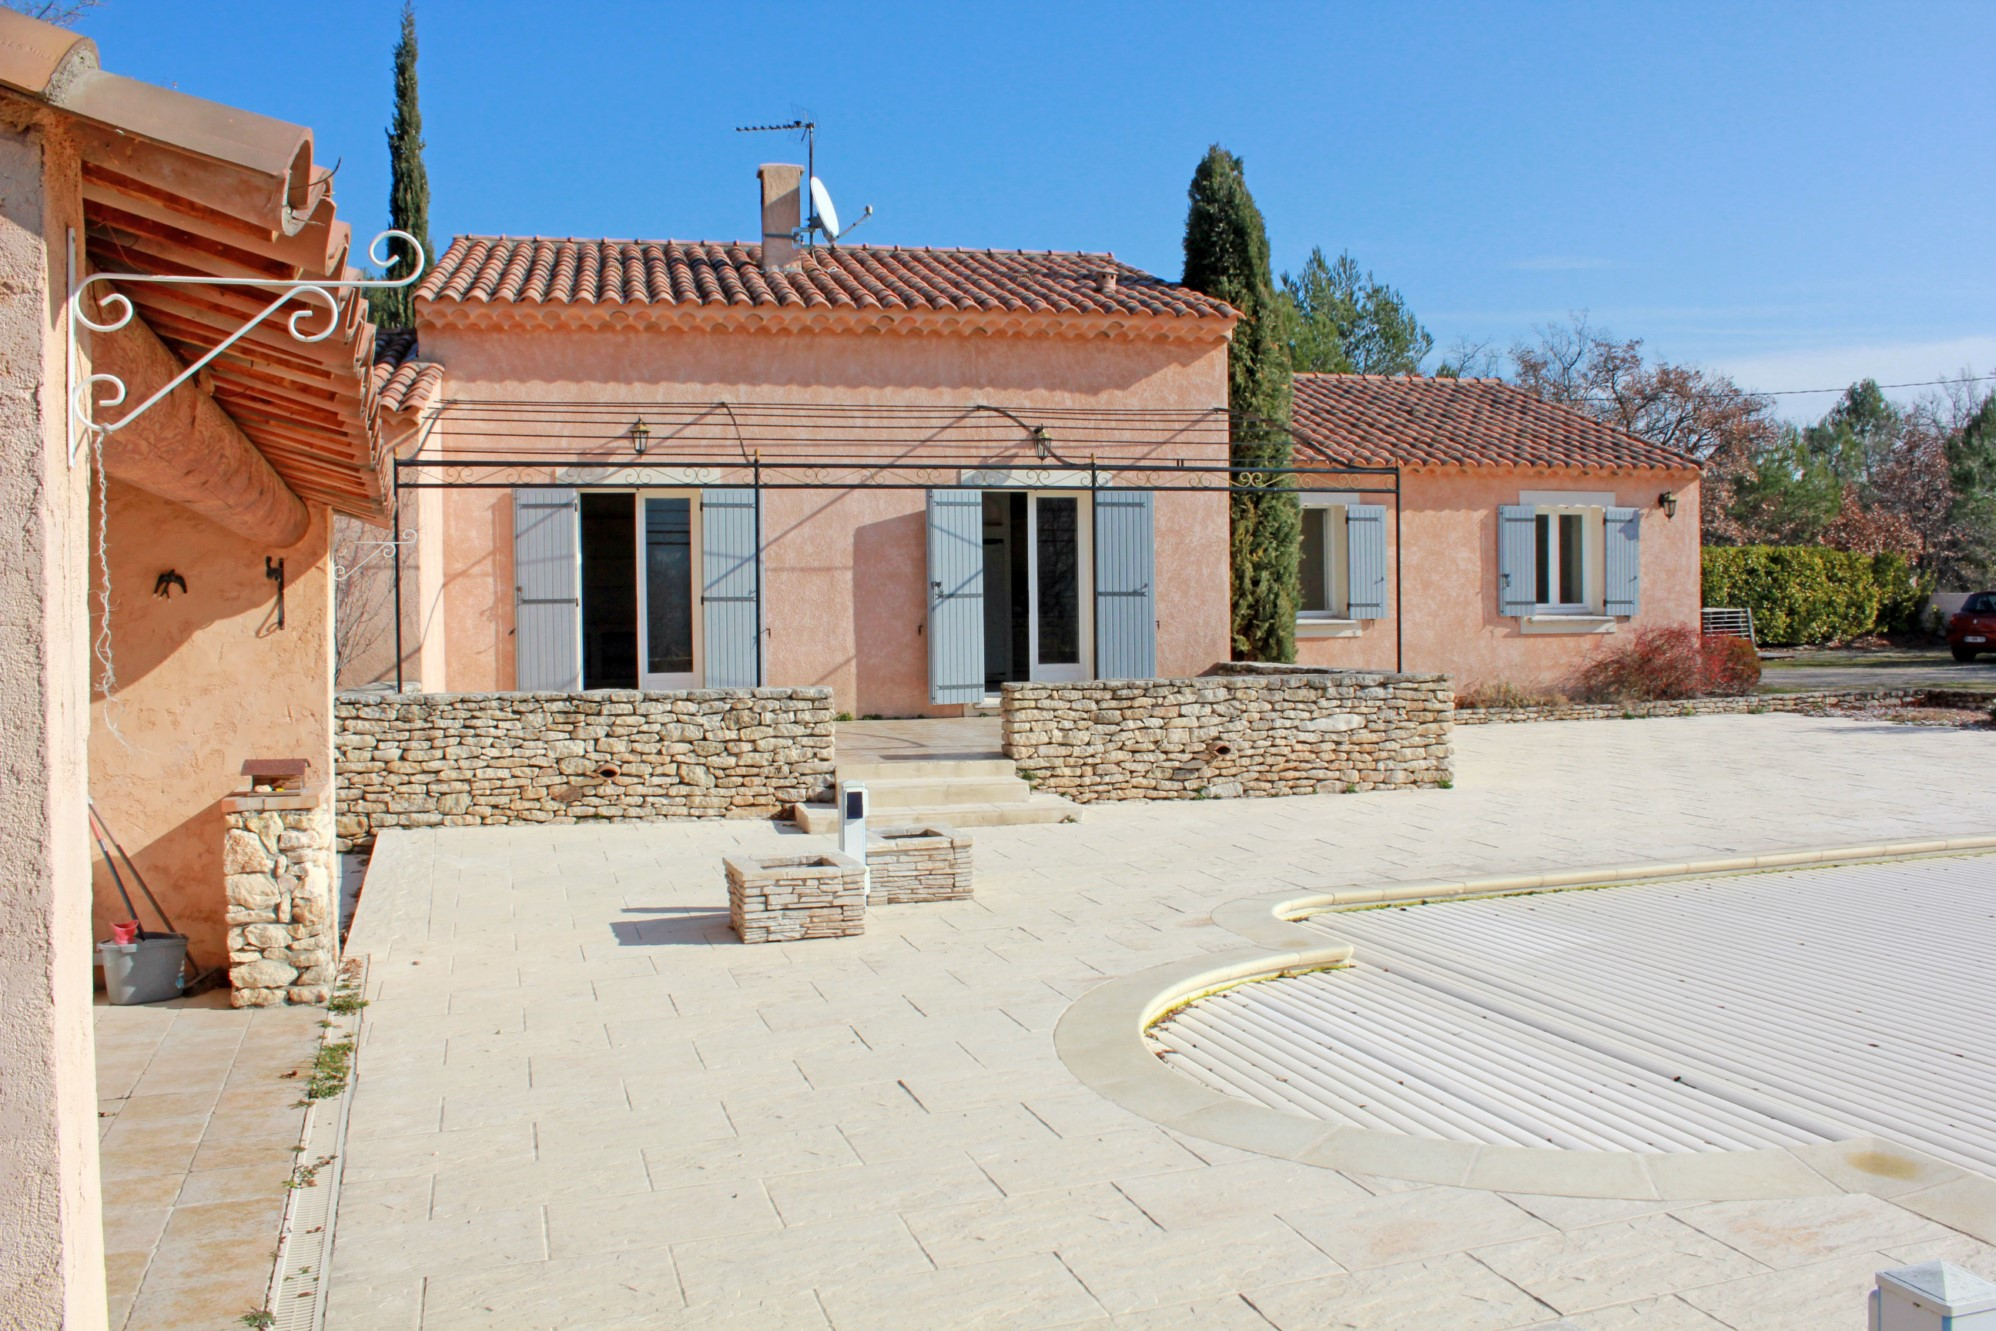 Ventes maison traditionnelle avec piscine et vue sur le for Maison traditionnelle